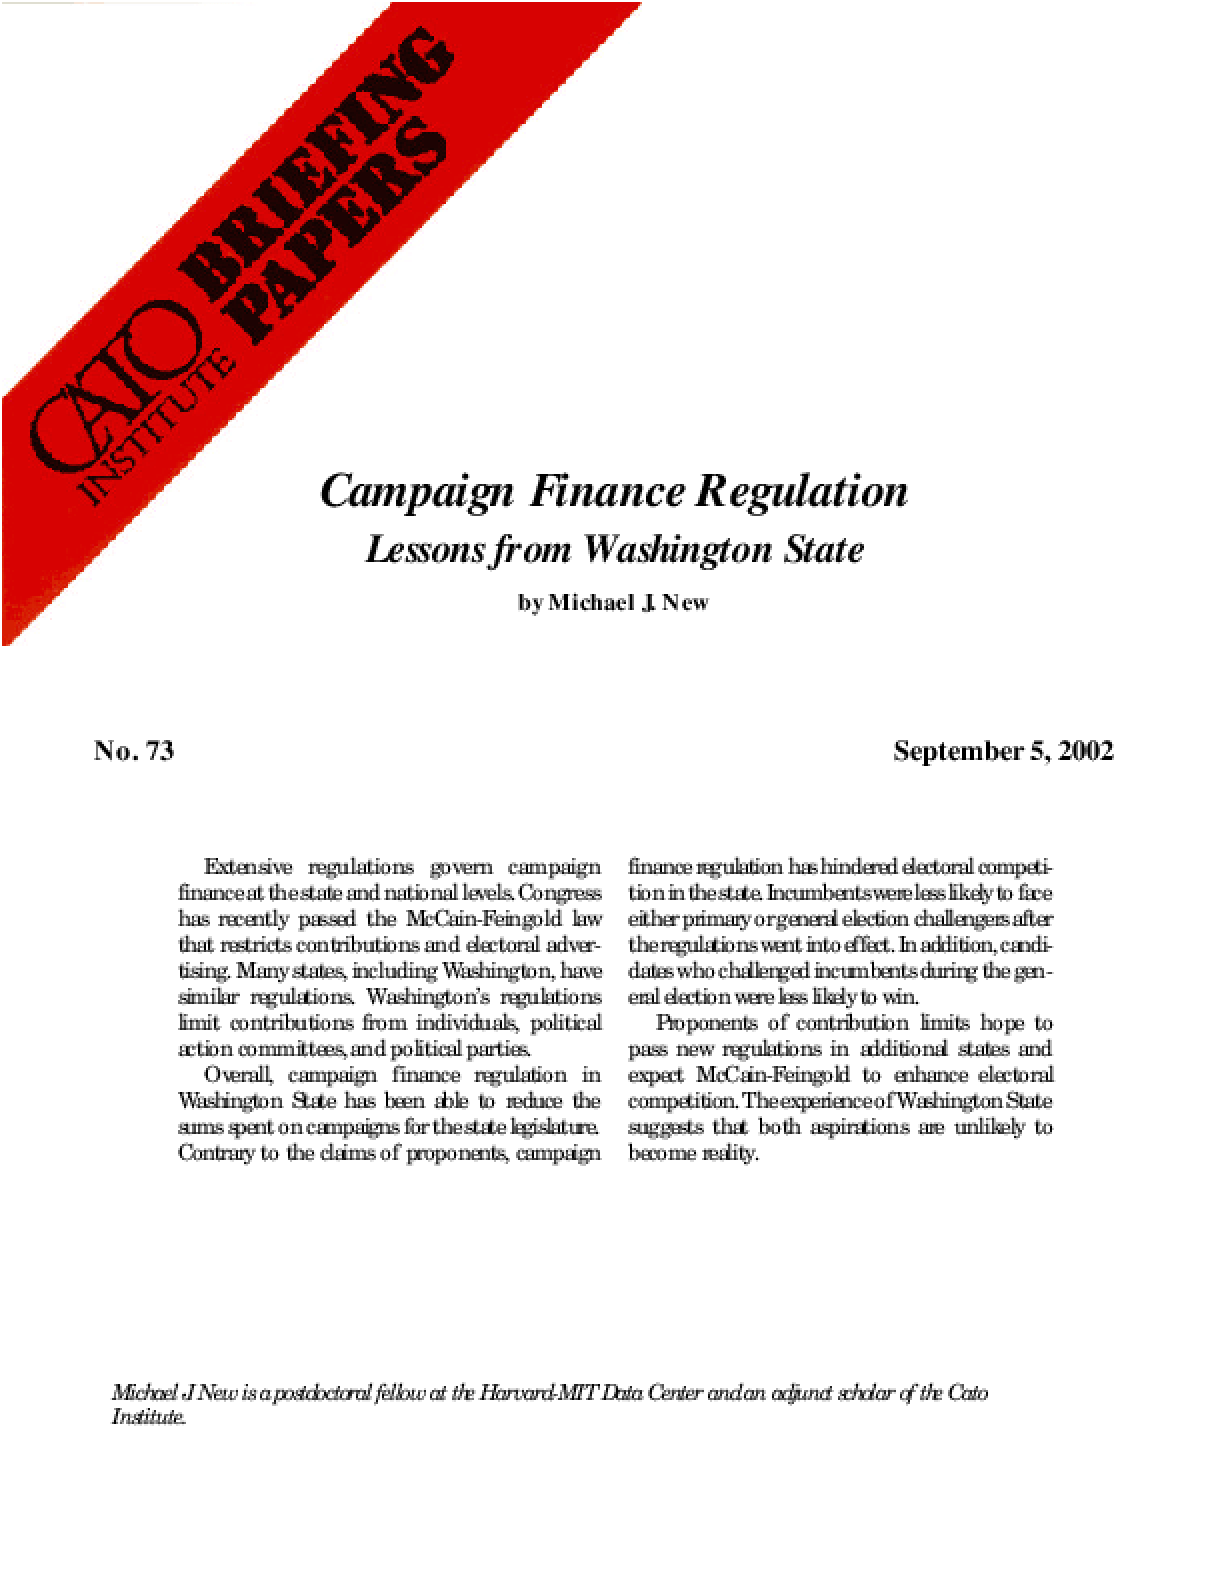 Campaign Finance Regulation: Lessons from Washington State